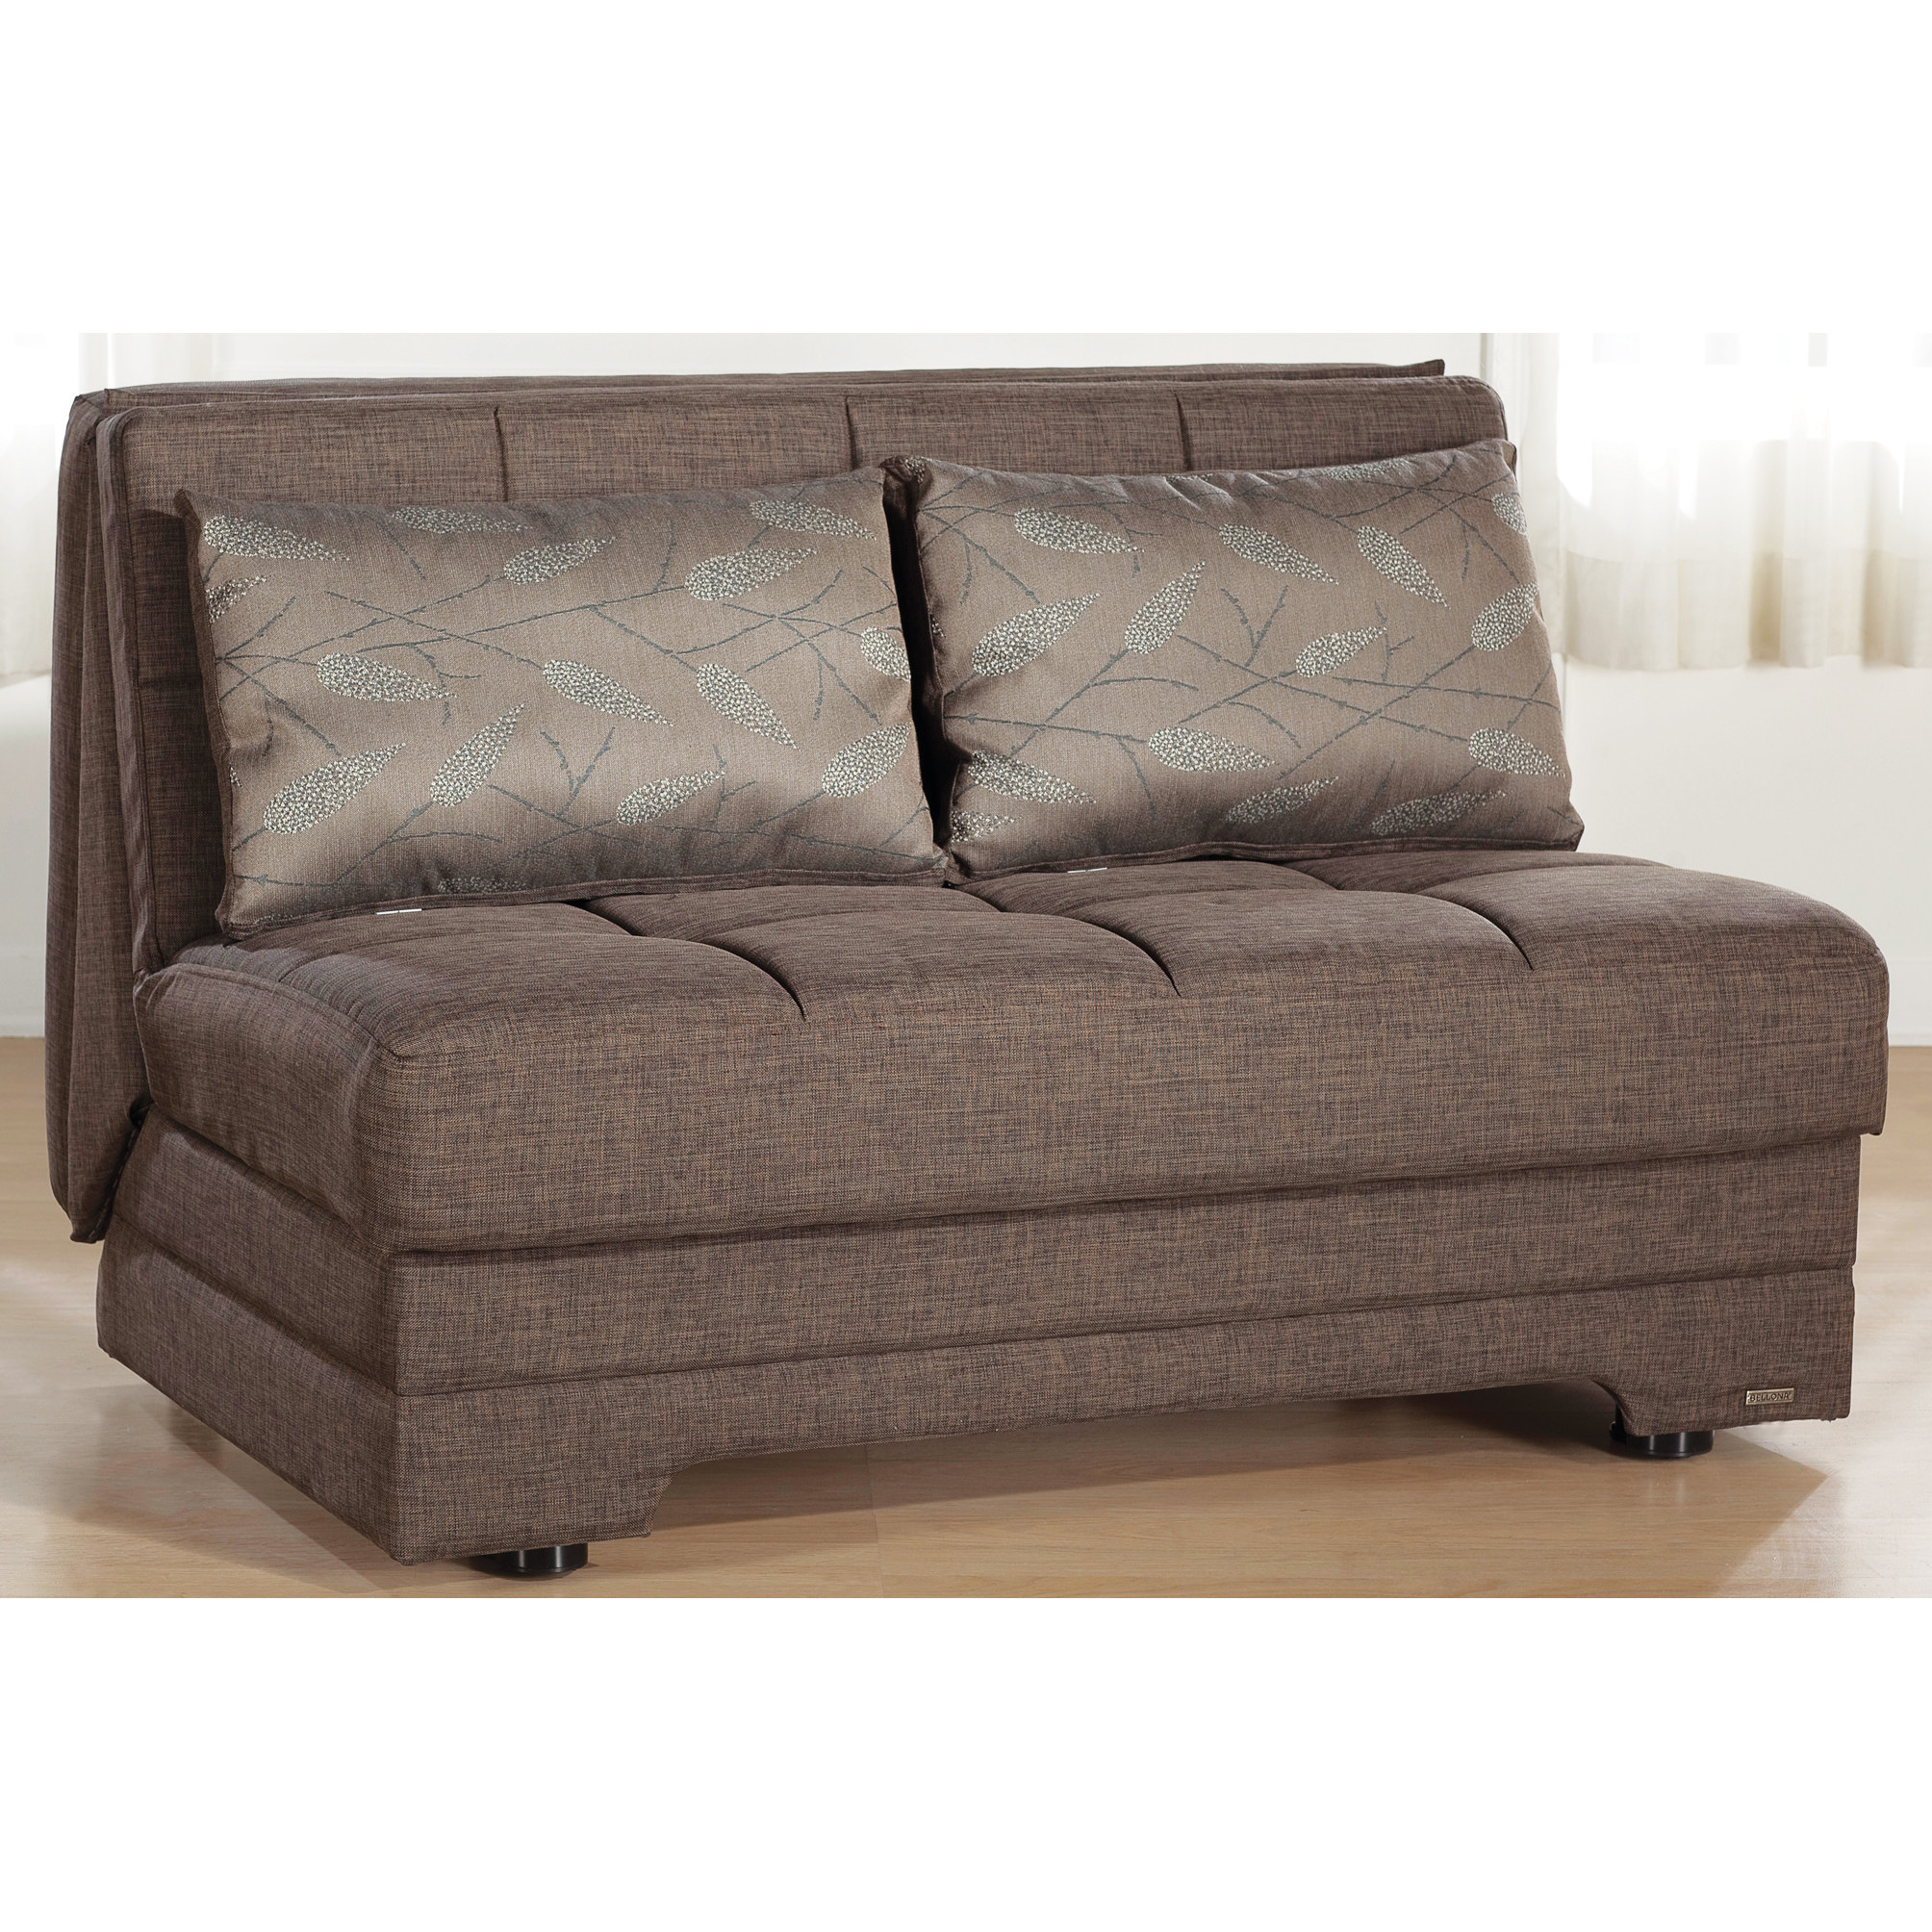 loveseat sleeper sofa loveseat sleepers sleeper sofa sofa